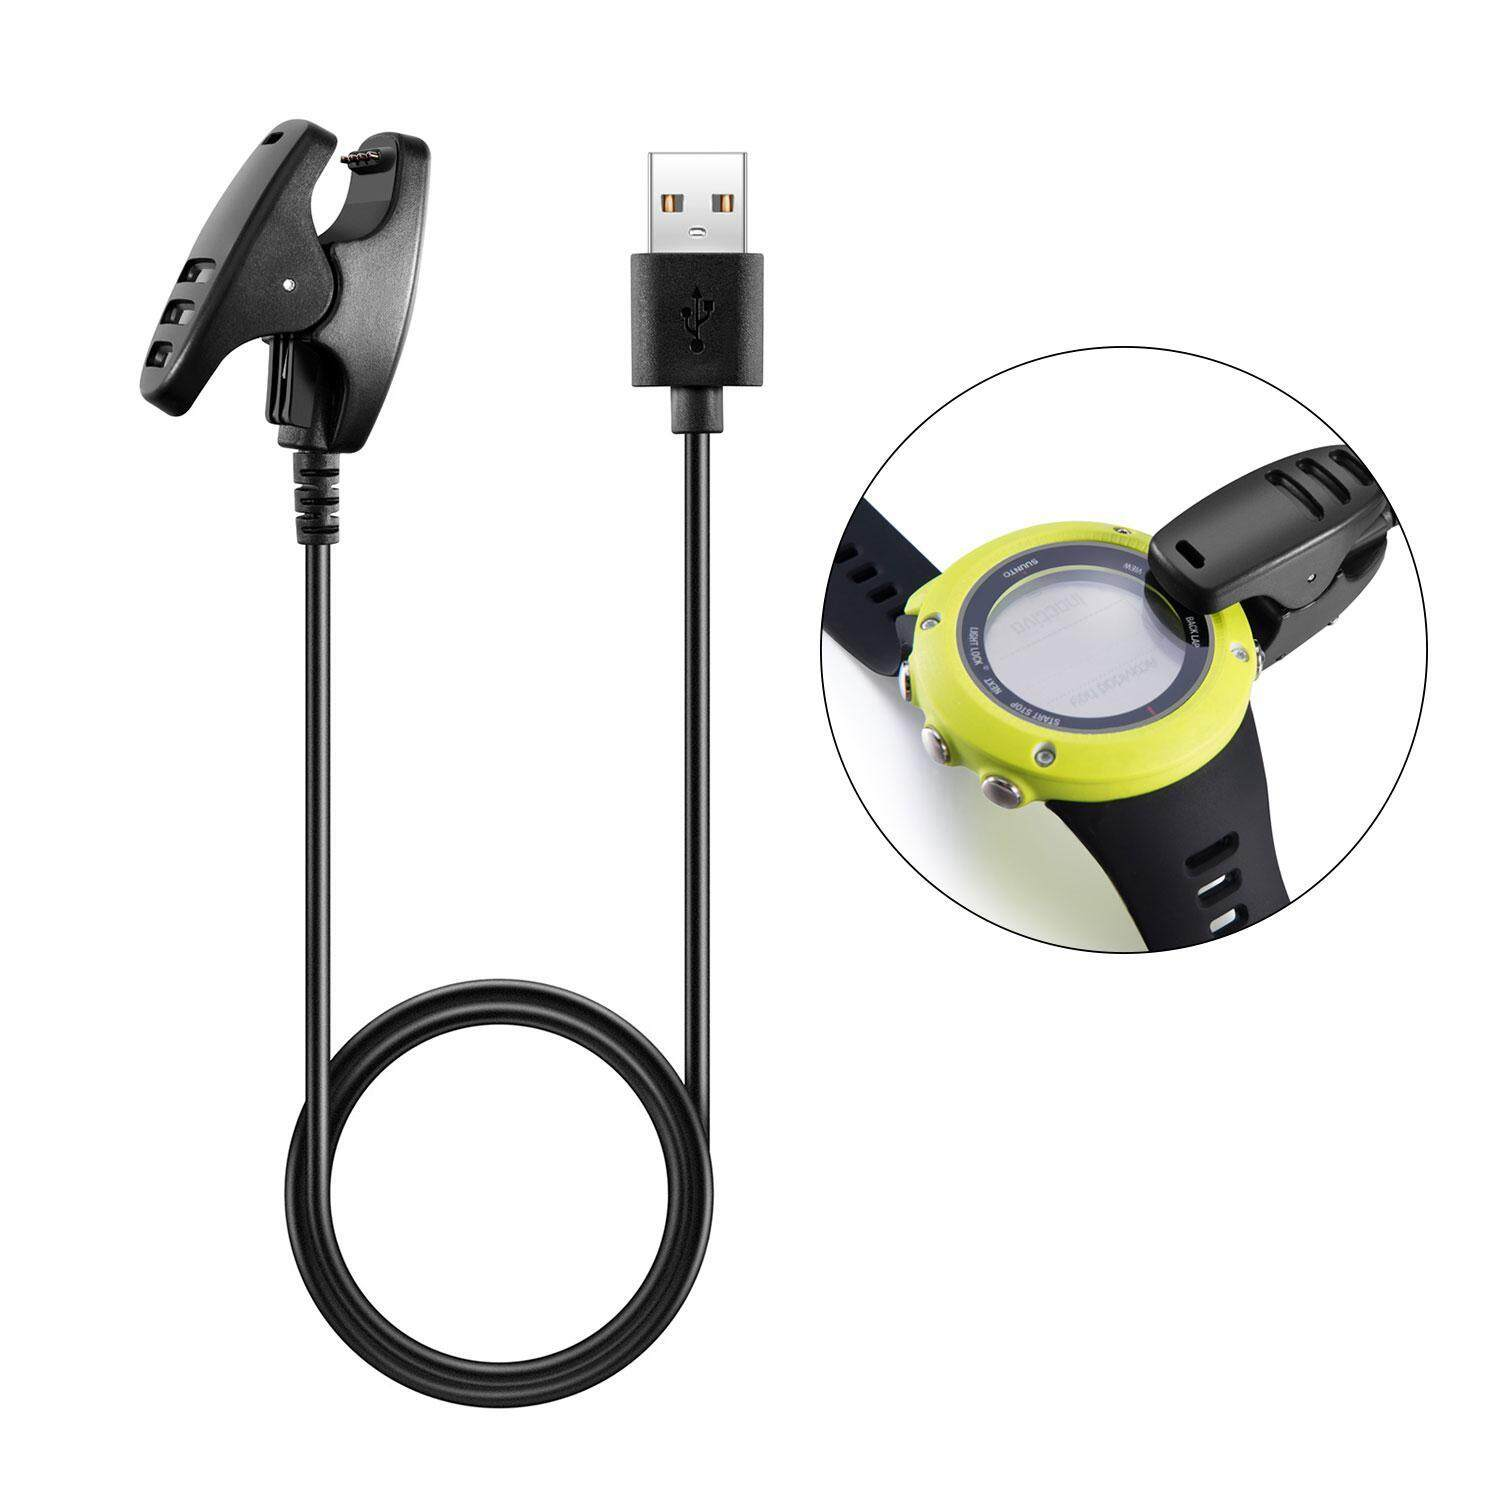 Oxoqo Charger For Suunto Ambit , Power Cable For Suunto Ambit/ambit2/ambit2 S/ambit 3 Run Sports Watch And Gps Track Pod Watch Replacement Usb Charge Charging Cable For Suunto By Oxoqo.